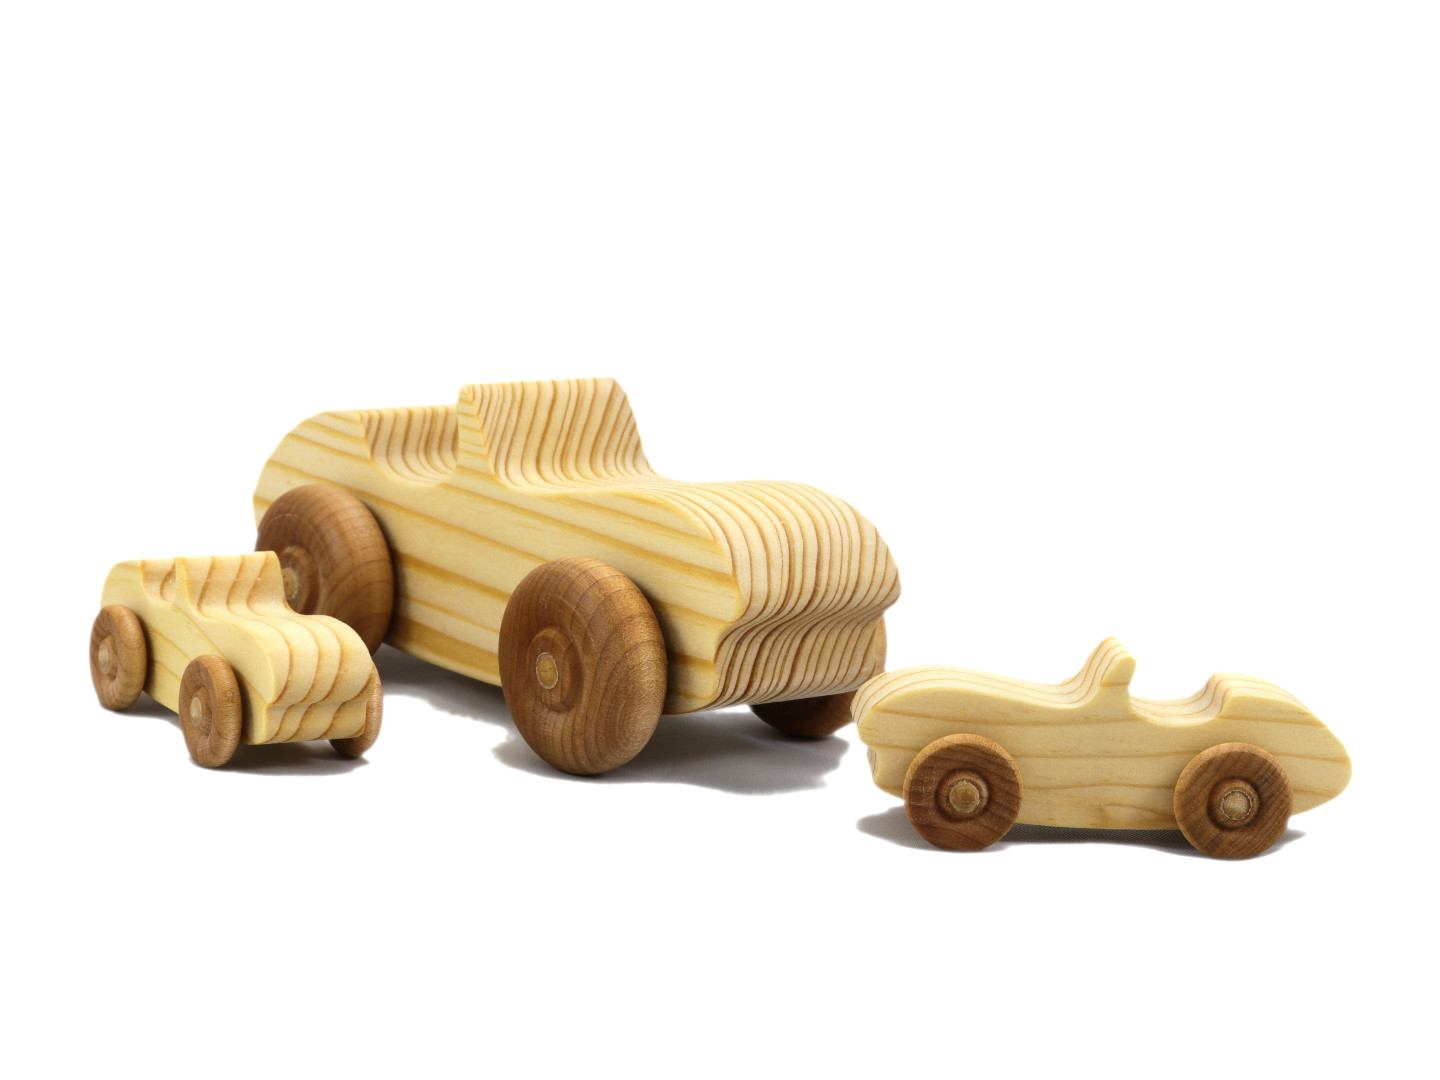 20191117-134405 032 Handmade Wooden Toy Car Sports Convertable Coupe S.jpg